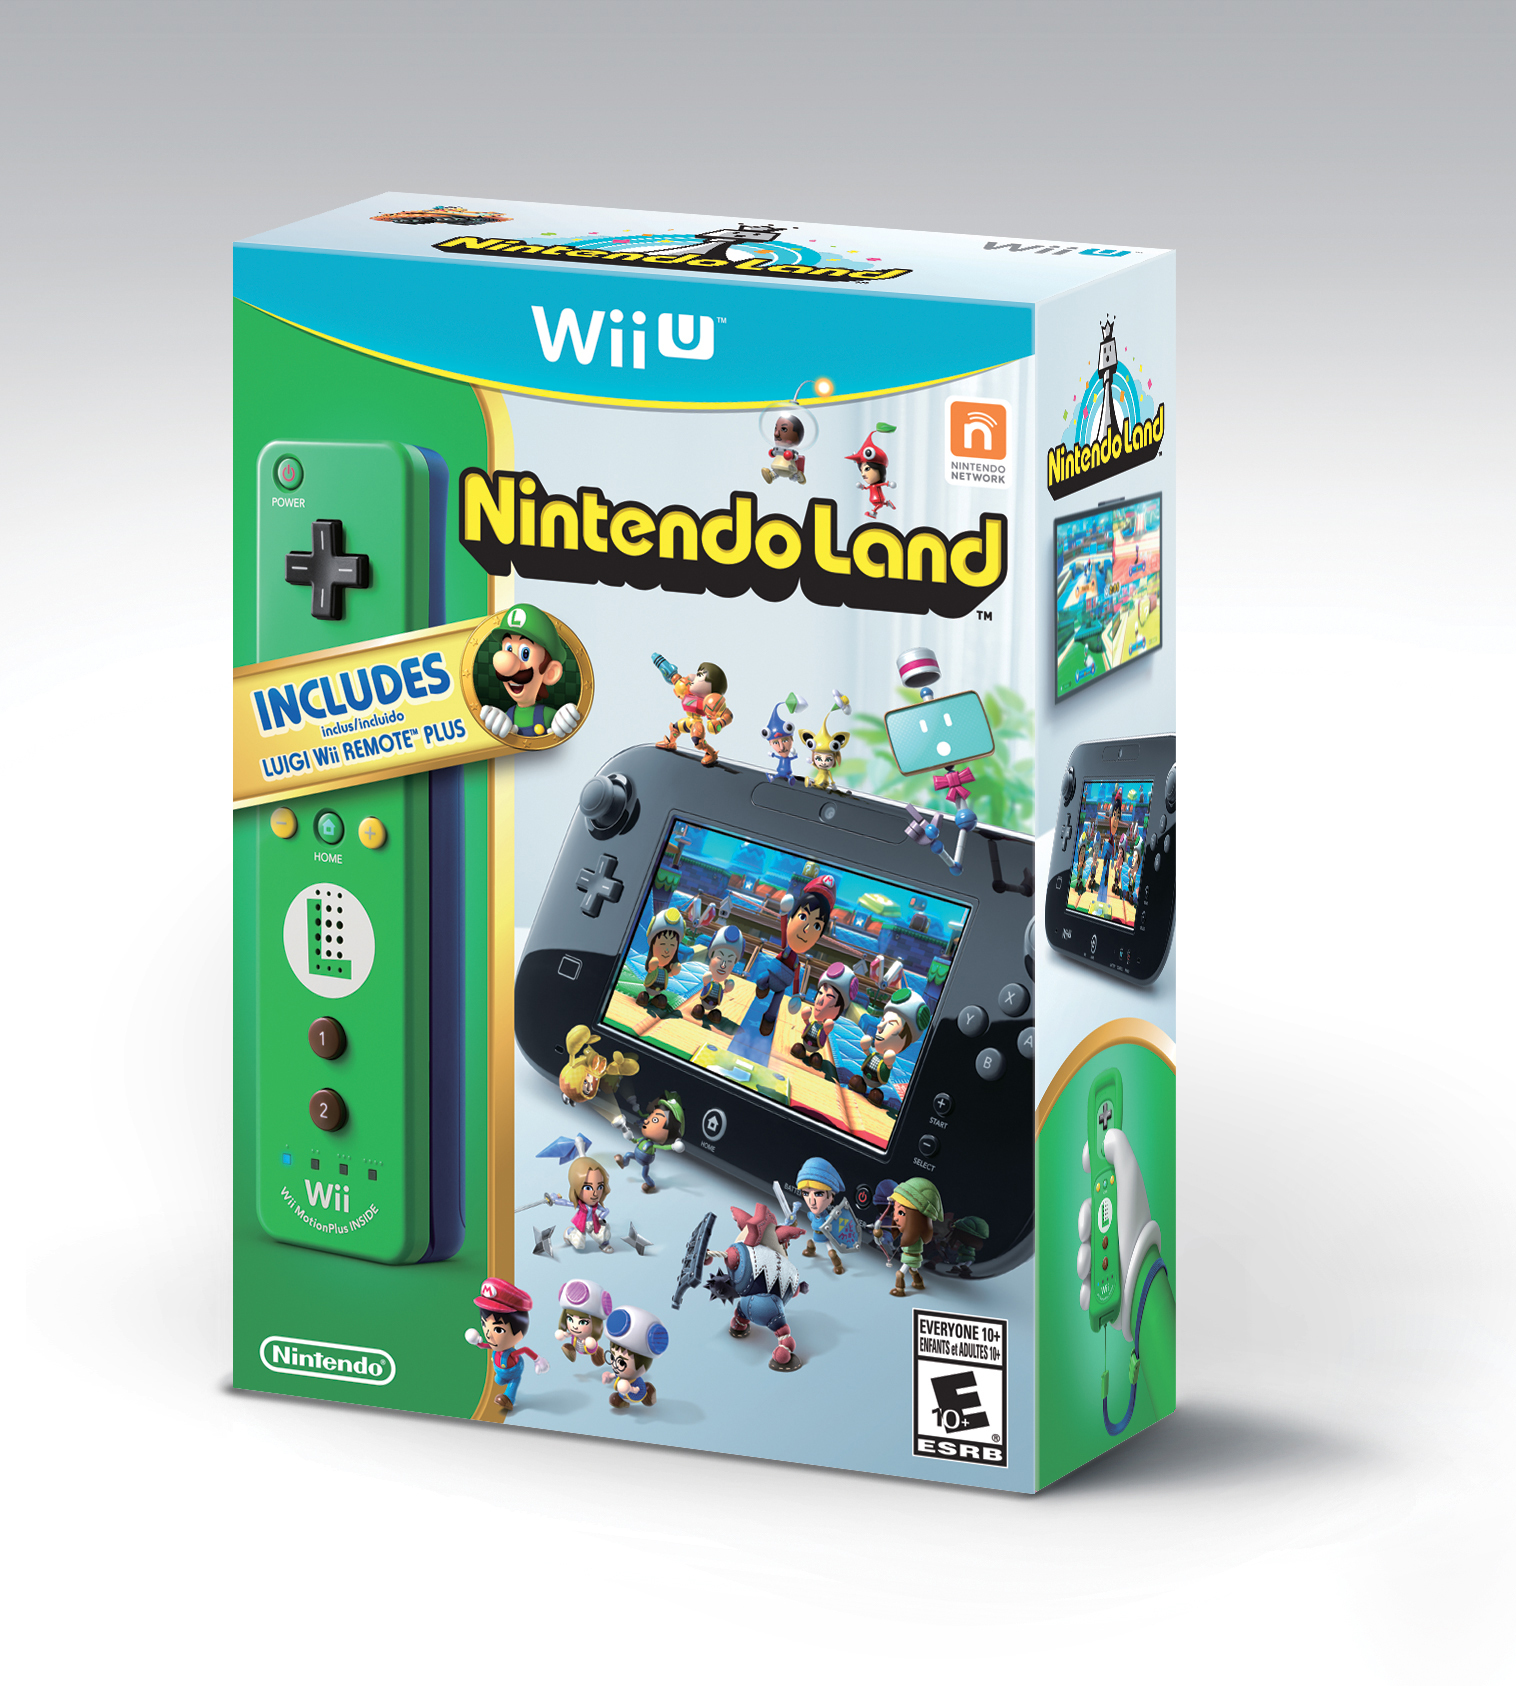 Nintendo Land for Wii U comes packaged with a Luigi-themed Wii Remote Plus controller (Photo: Business Wire)